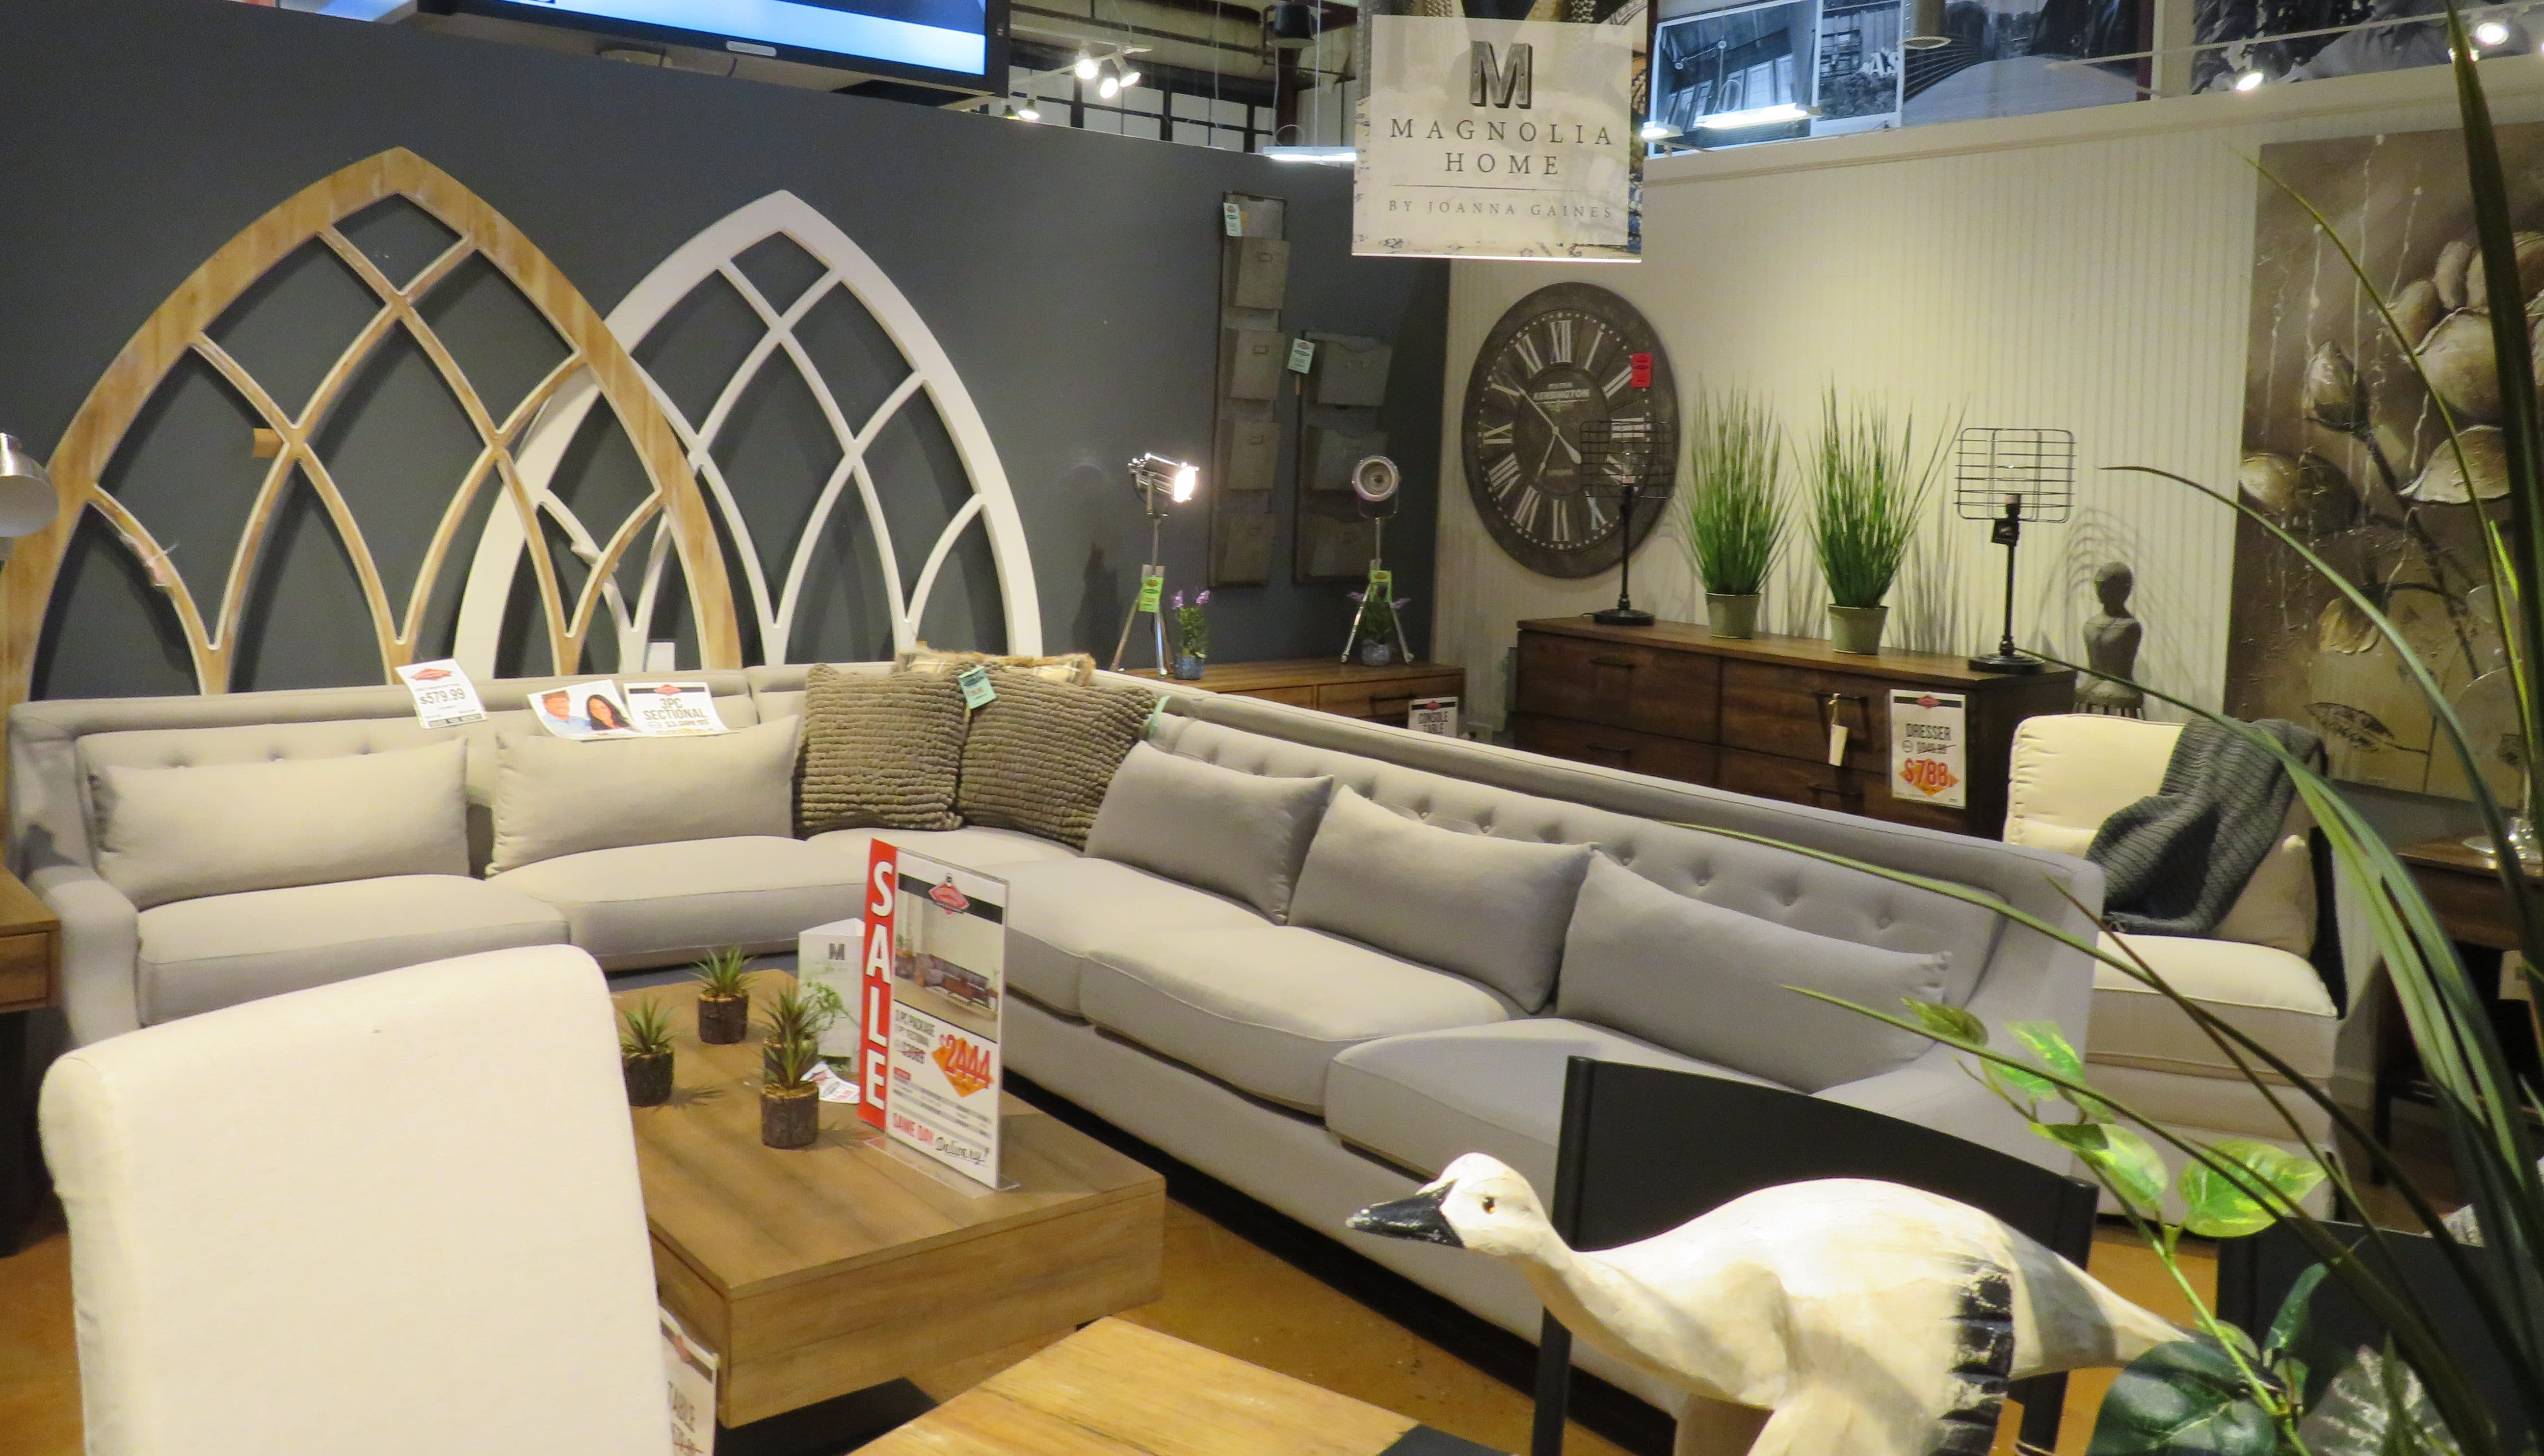 Magnolia home collection at Underpriced Furniture